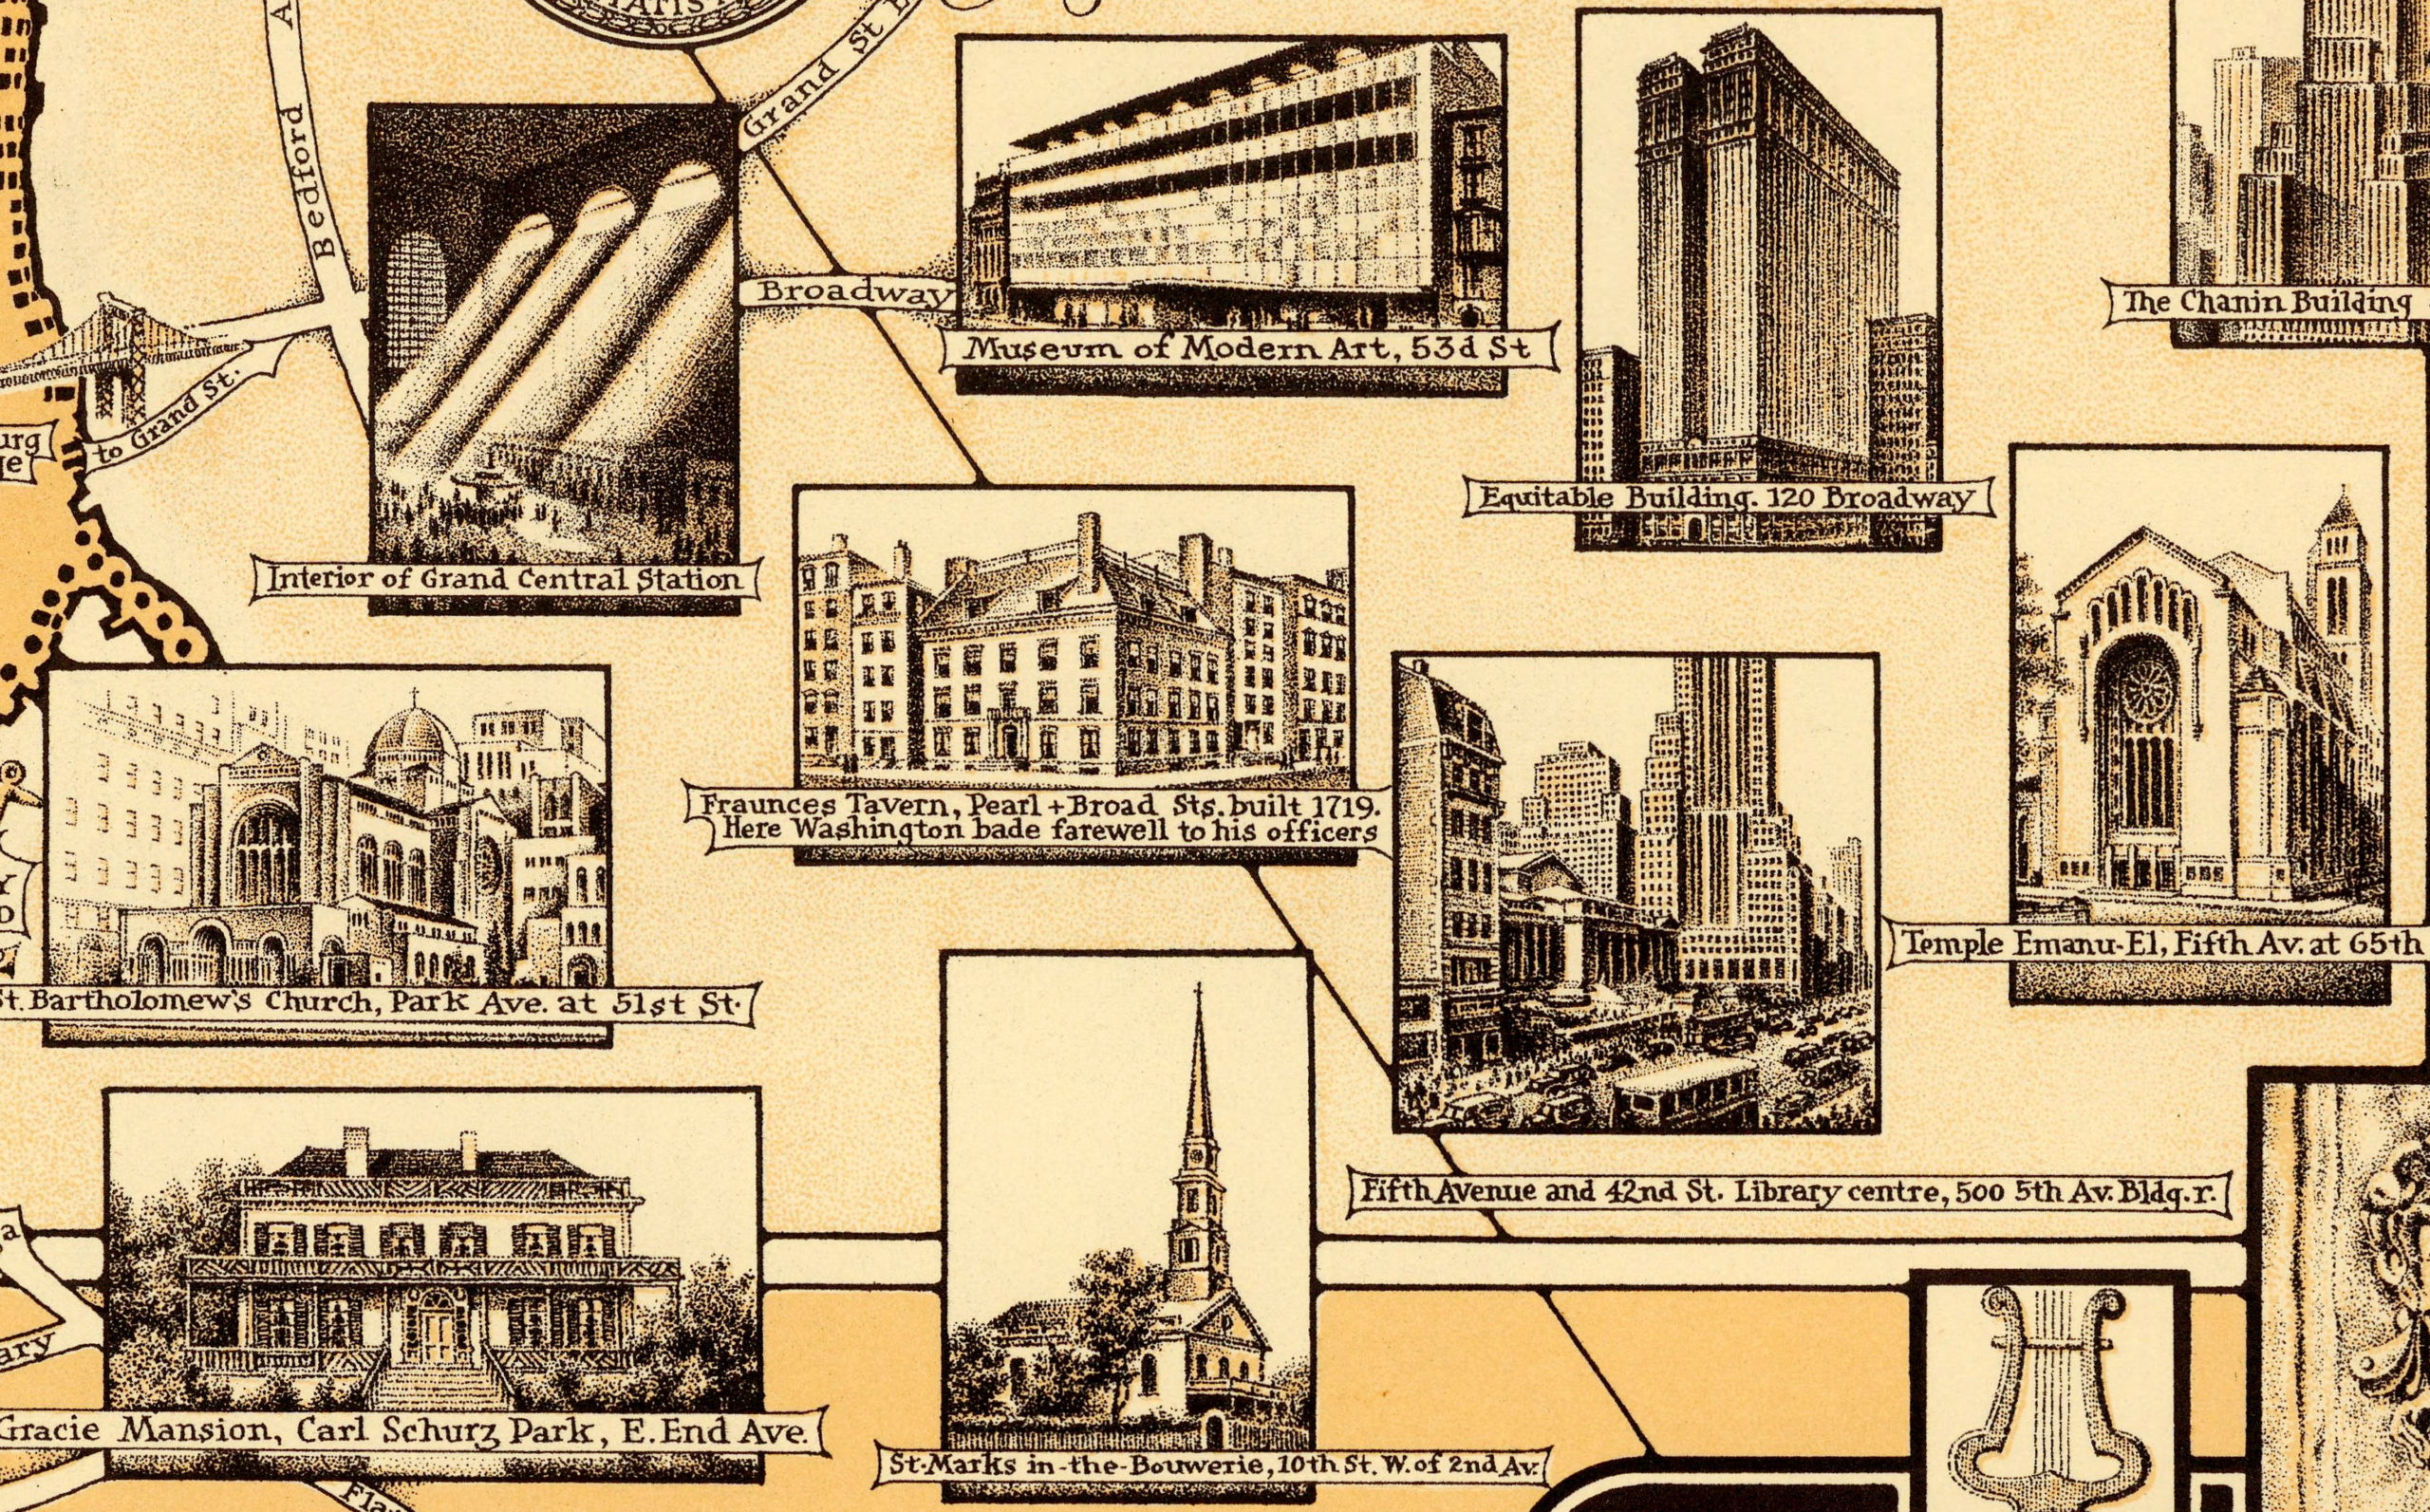 Old map of Manhattan, NYC featuring illustrations from 1939